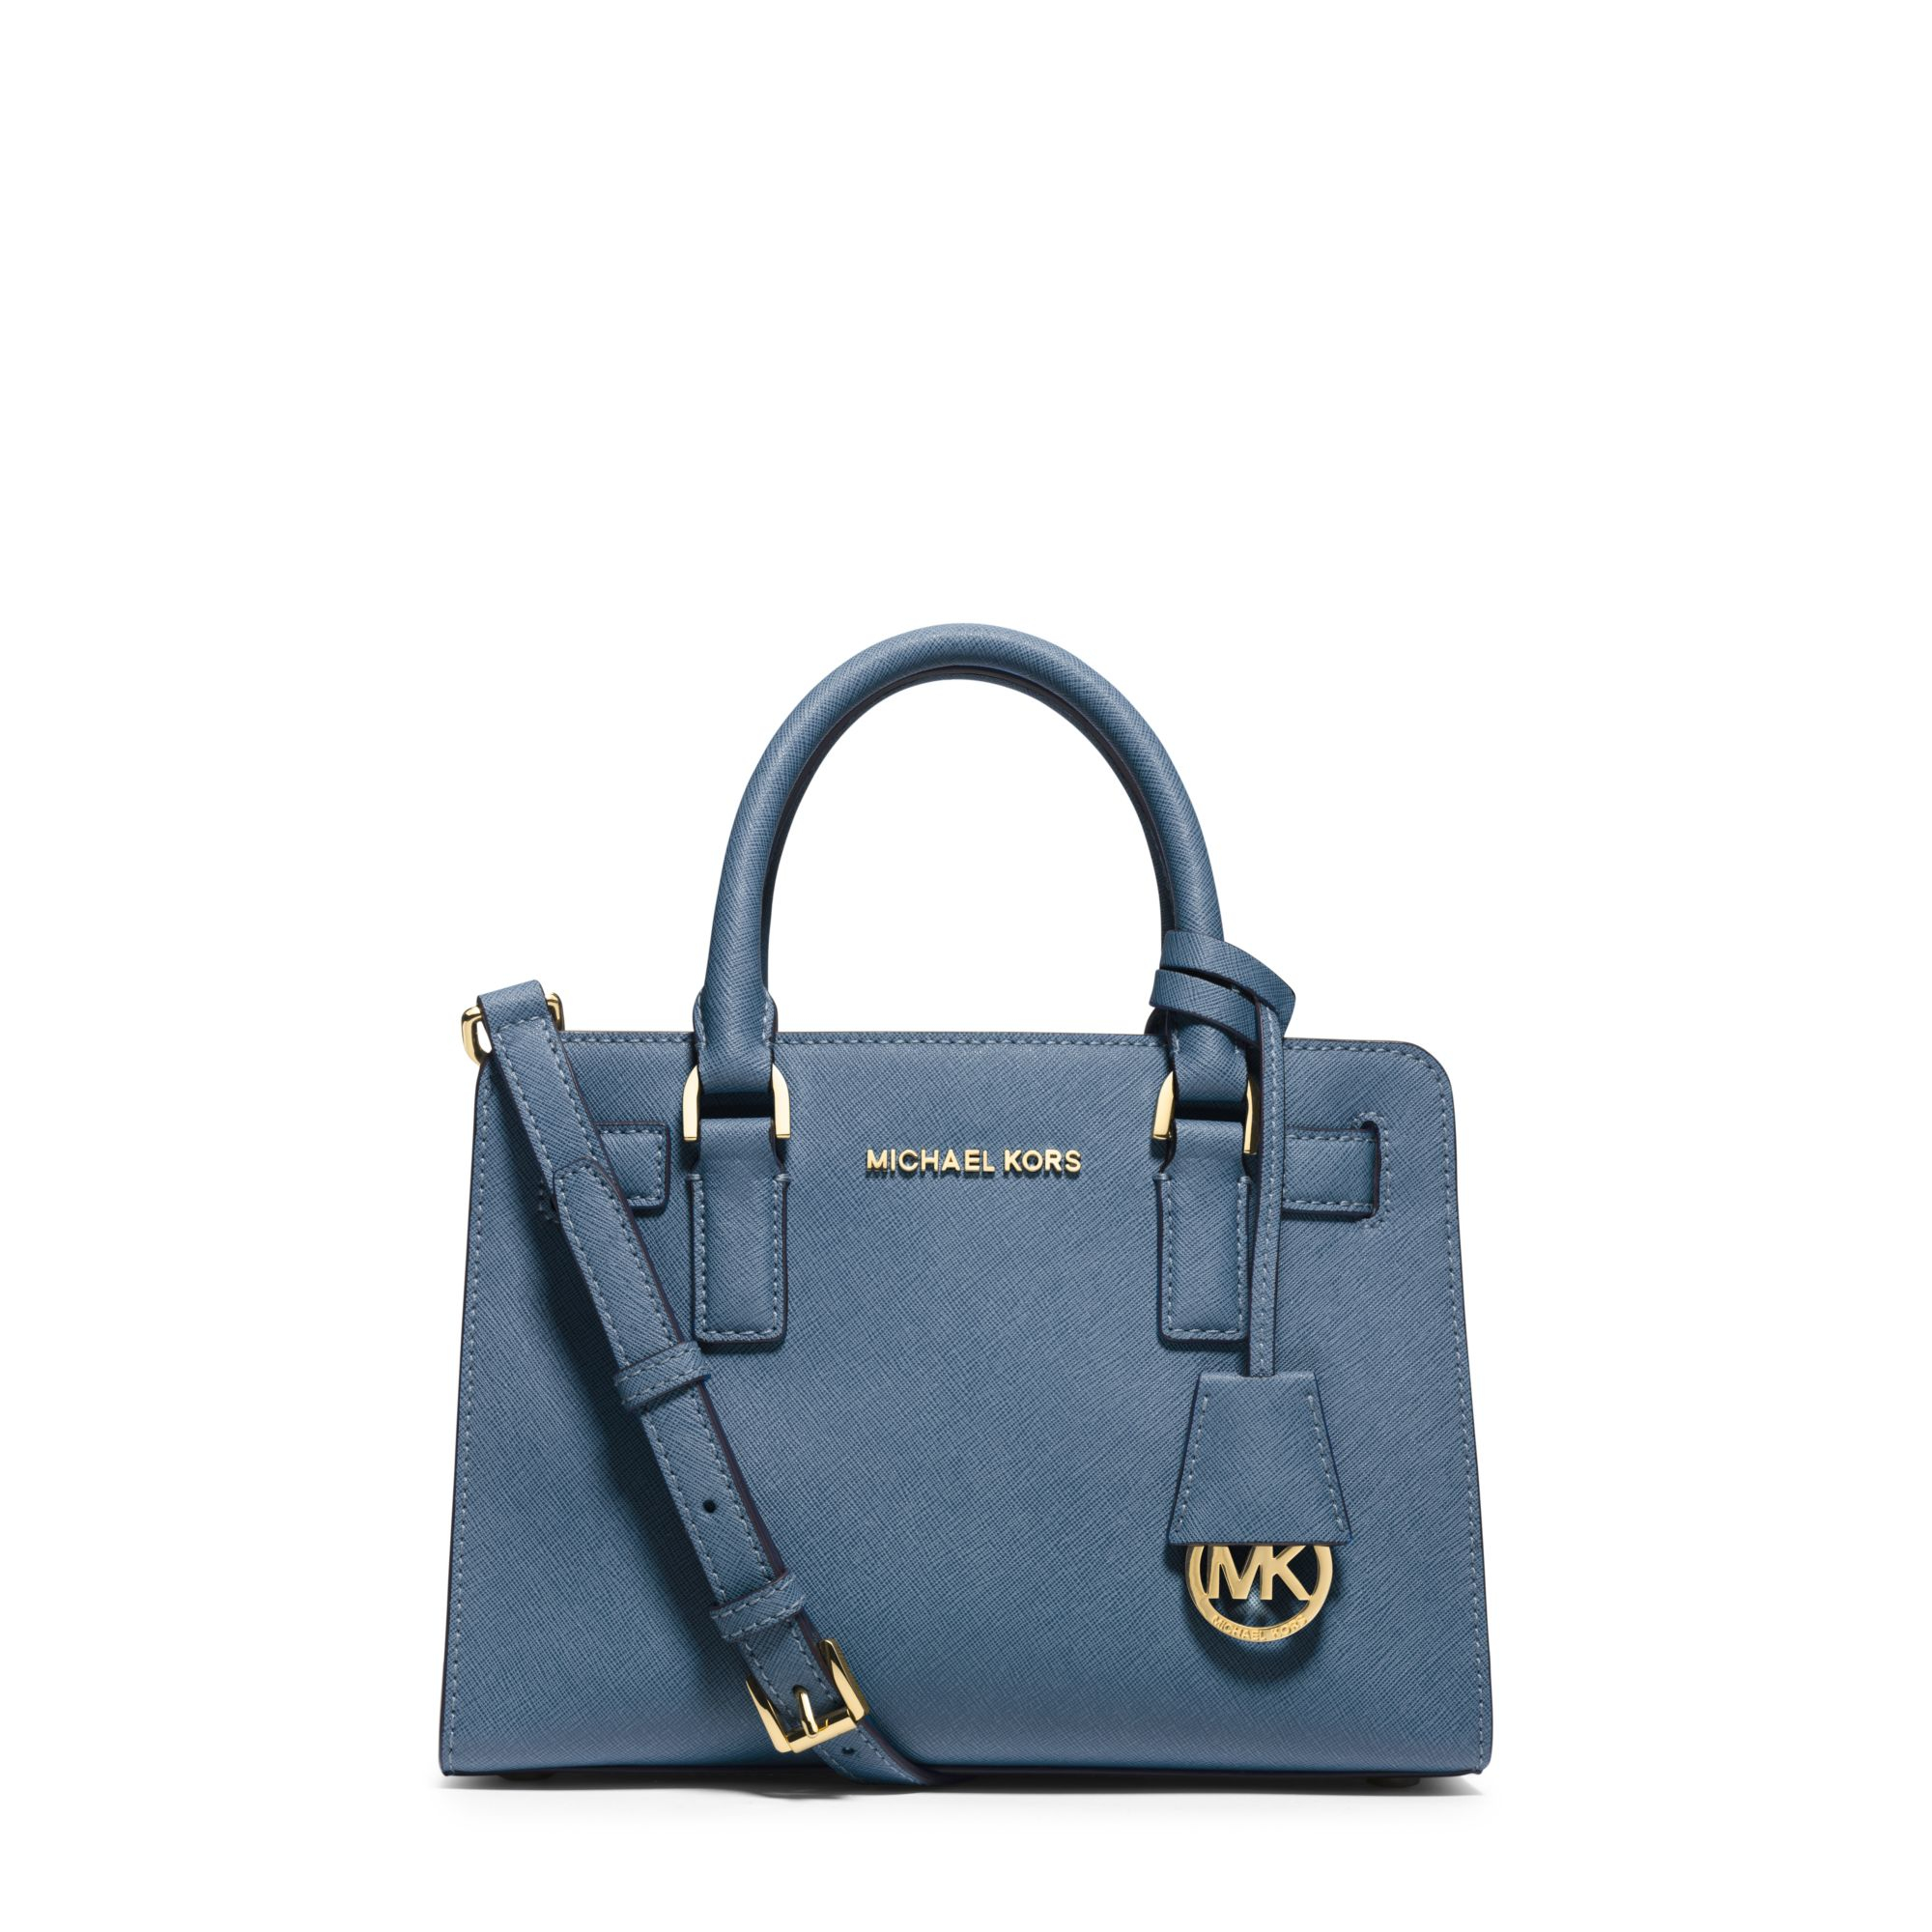 michael kors dillon small saffiano leather satchel in blue. Black Bedroom Furniture Sets. Home Design Ideas